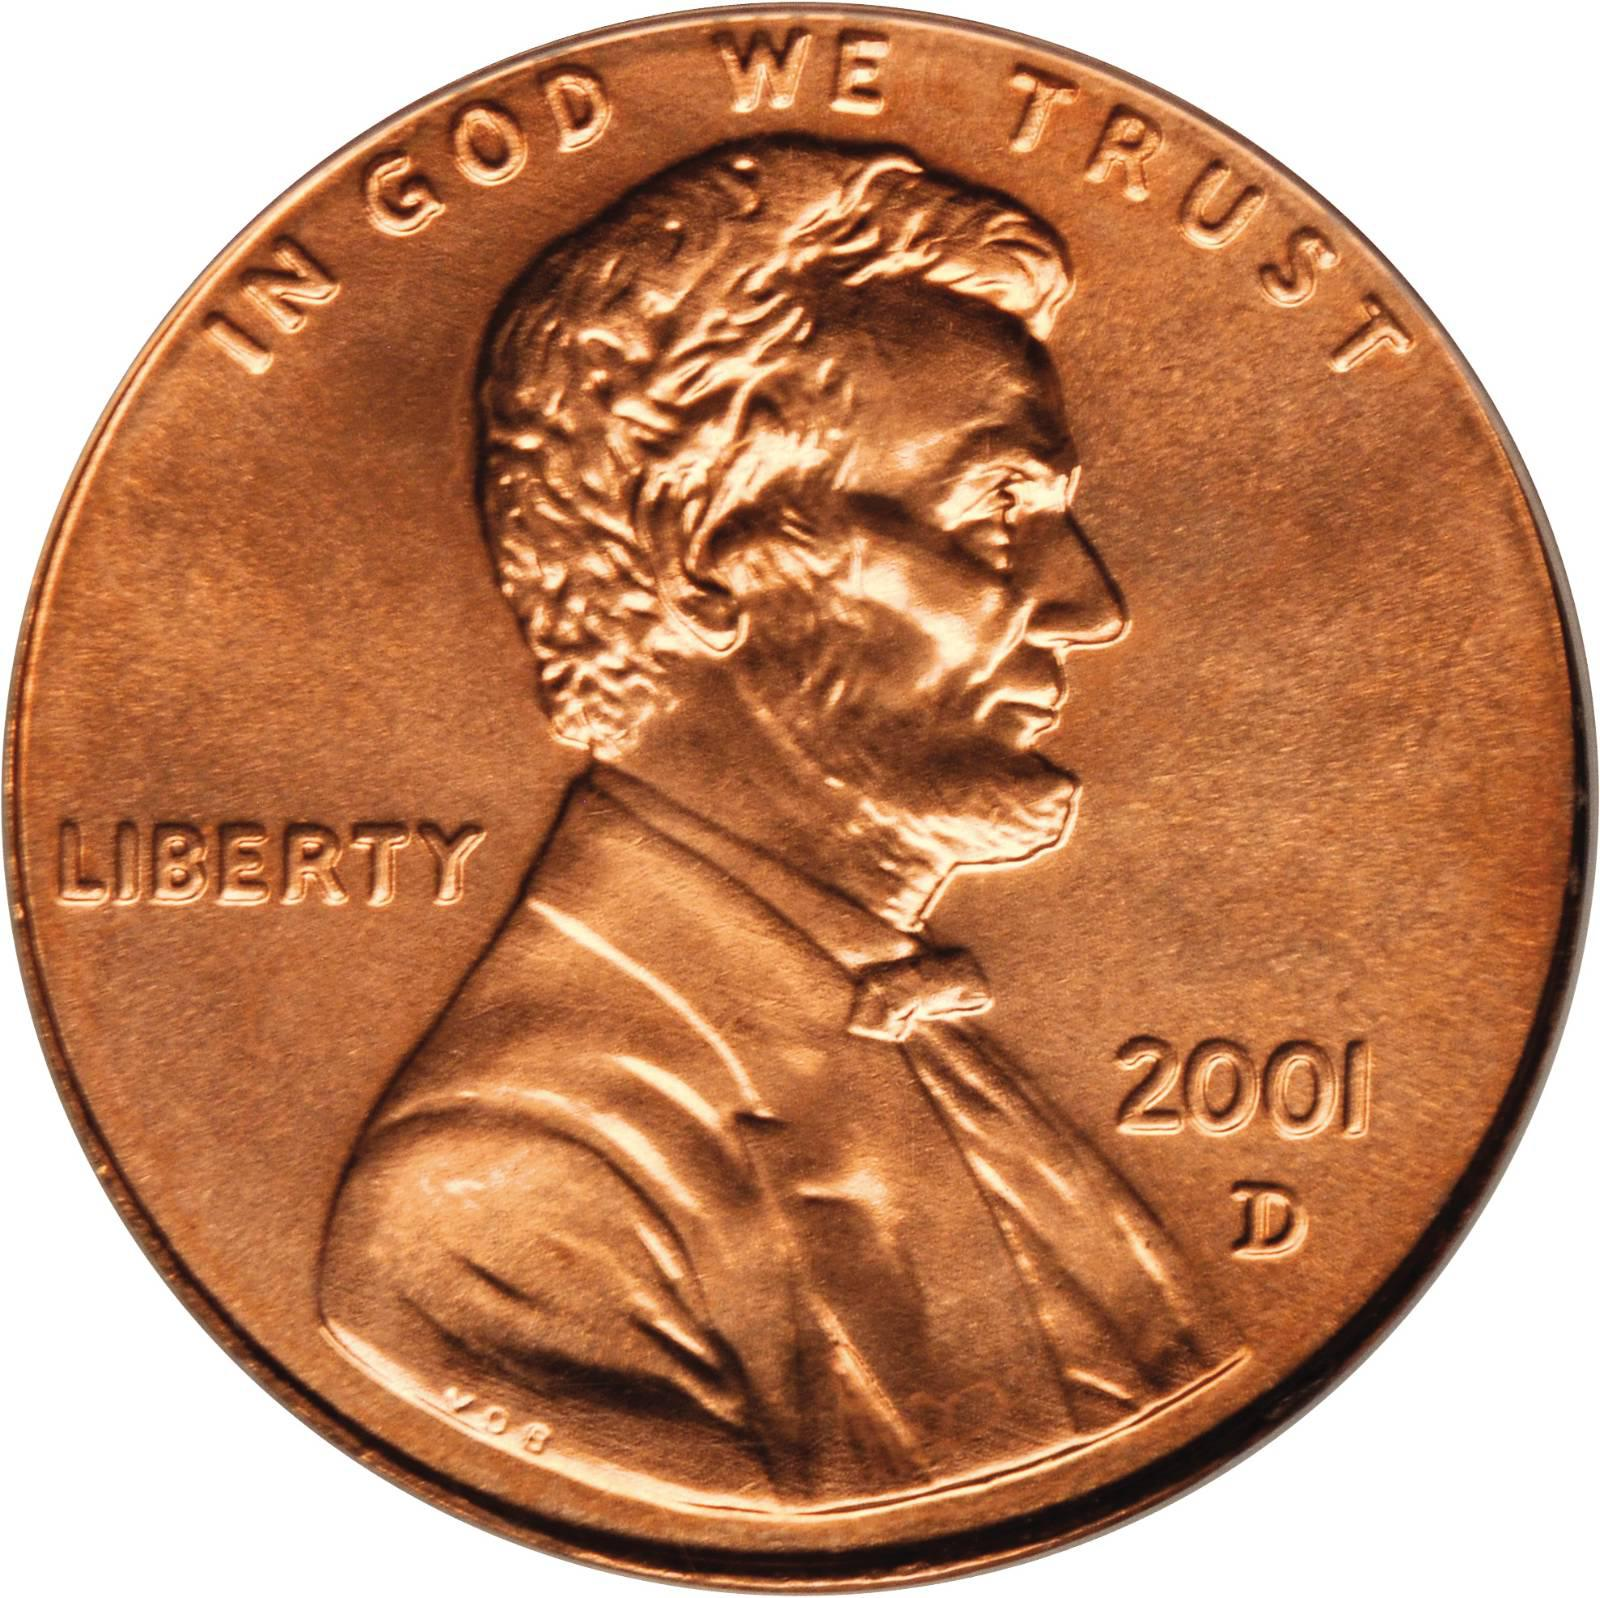 Image result for liberty 2001 penny